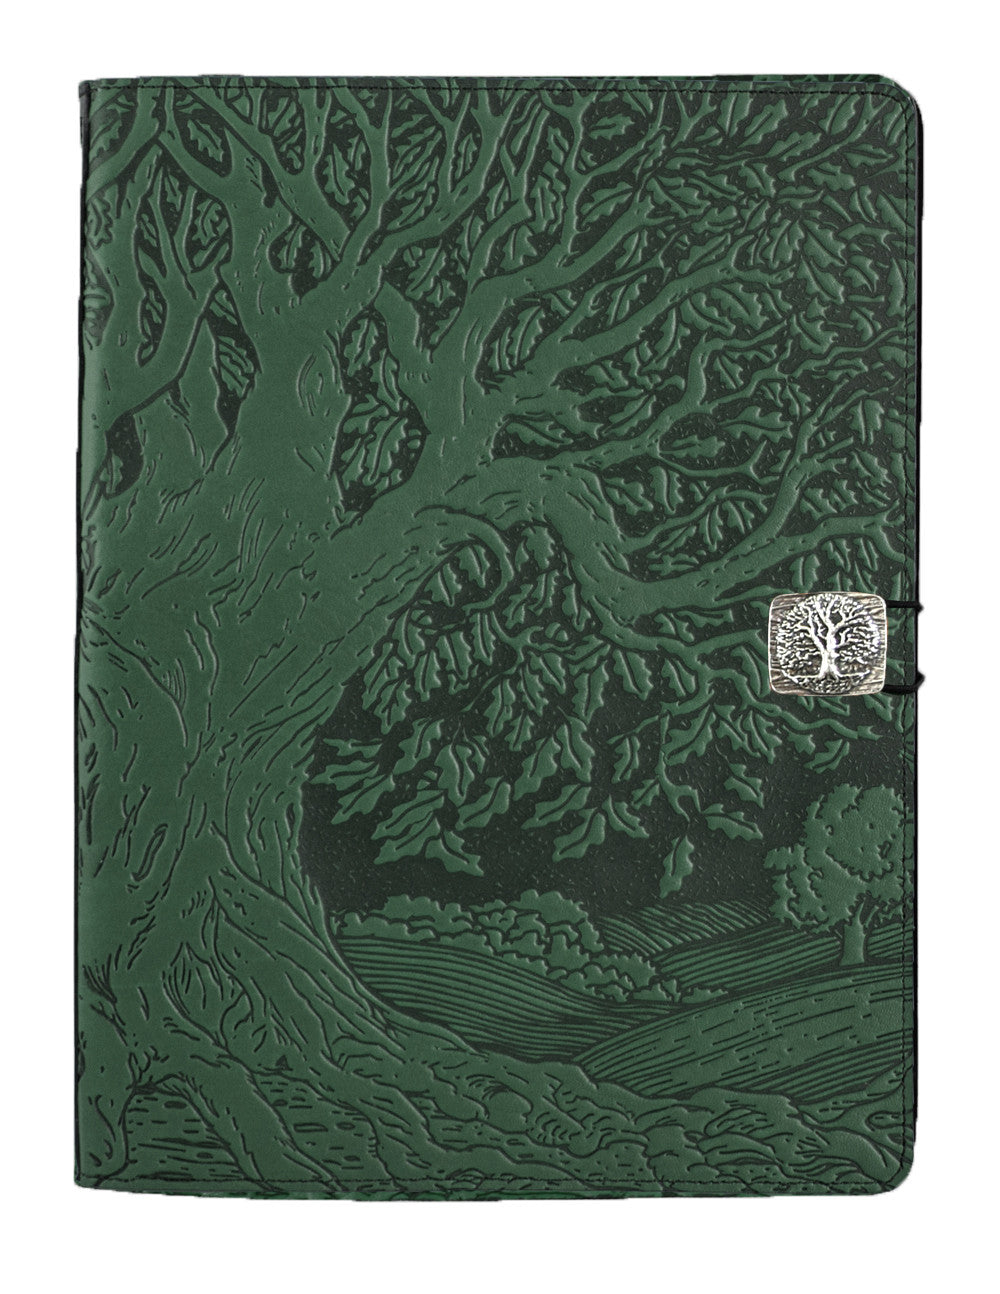 Leather iPad Pro Covers, Cases | Tree of Life | Oberon Design